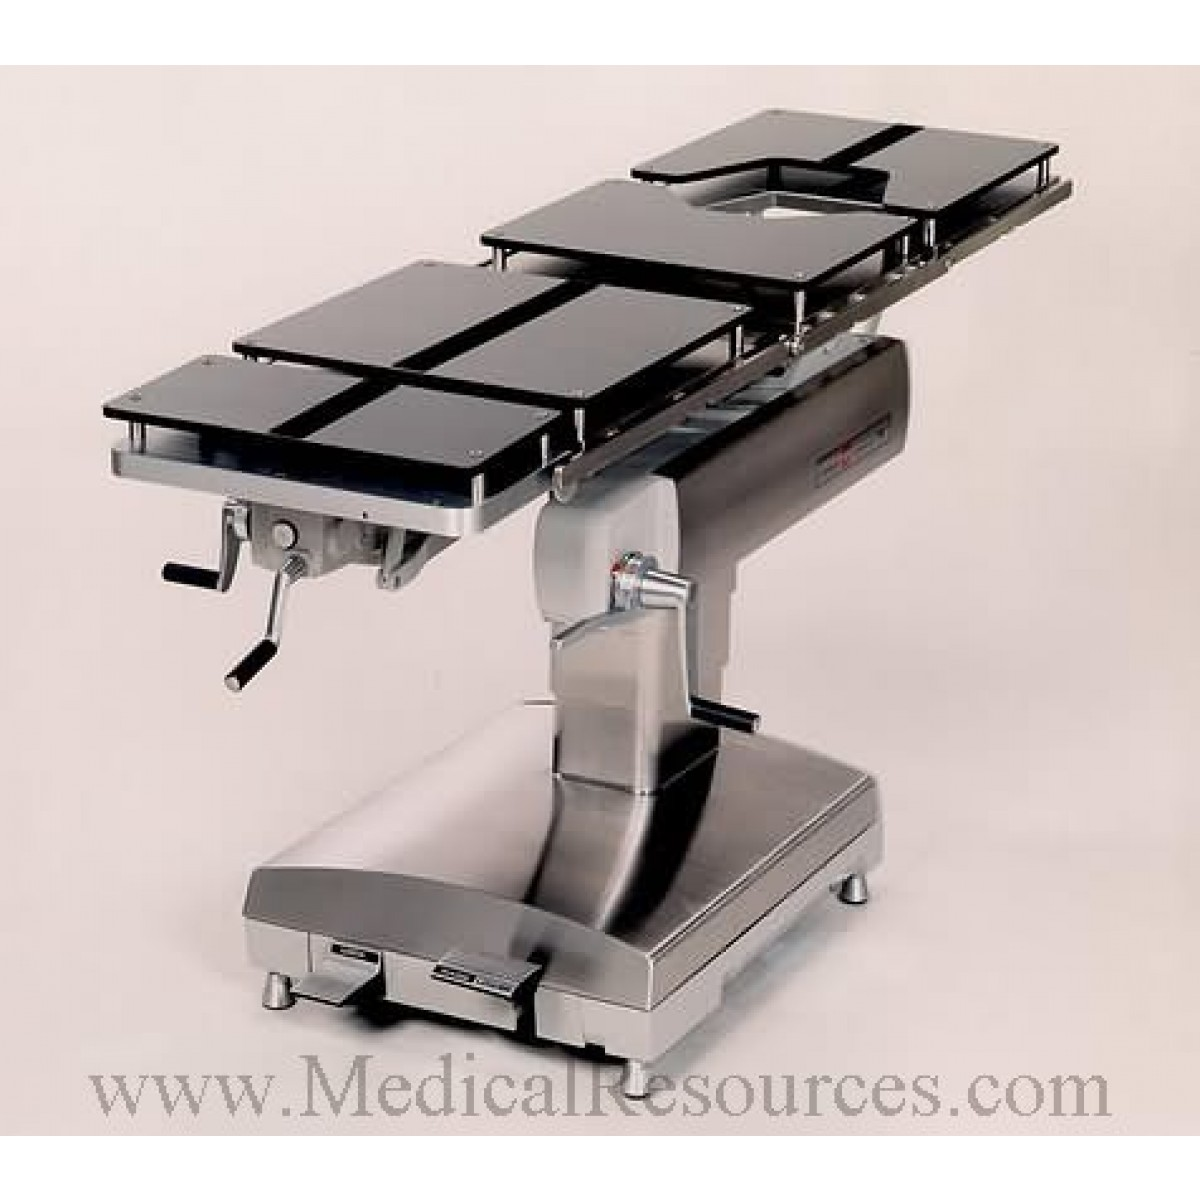 AMSCO Steris 2080M Manual OR Surgery Table